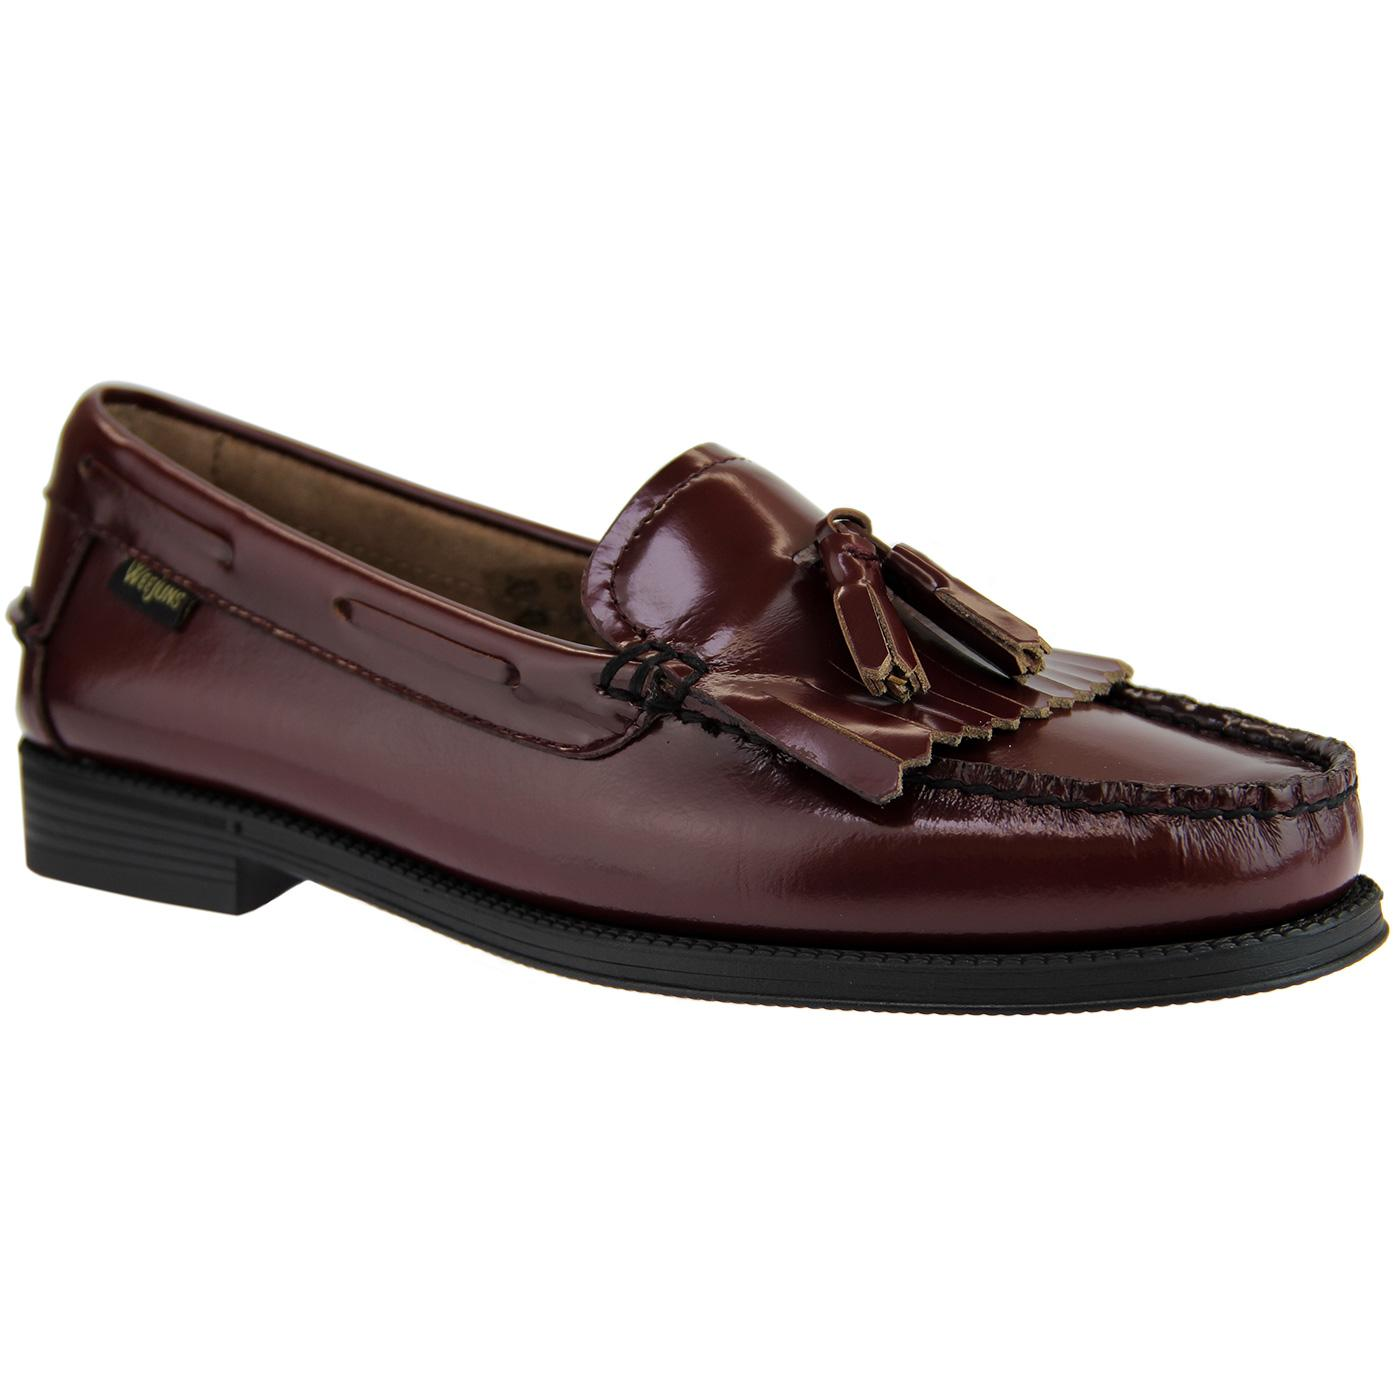 Esther BASS WEEJUNS Women's Tassel Loafers WINE